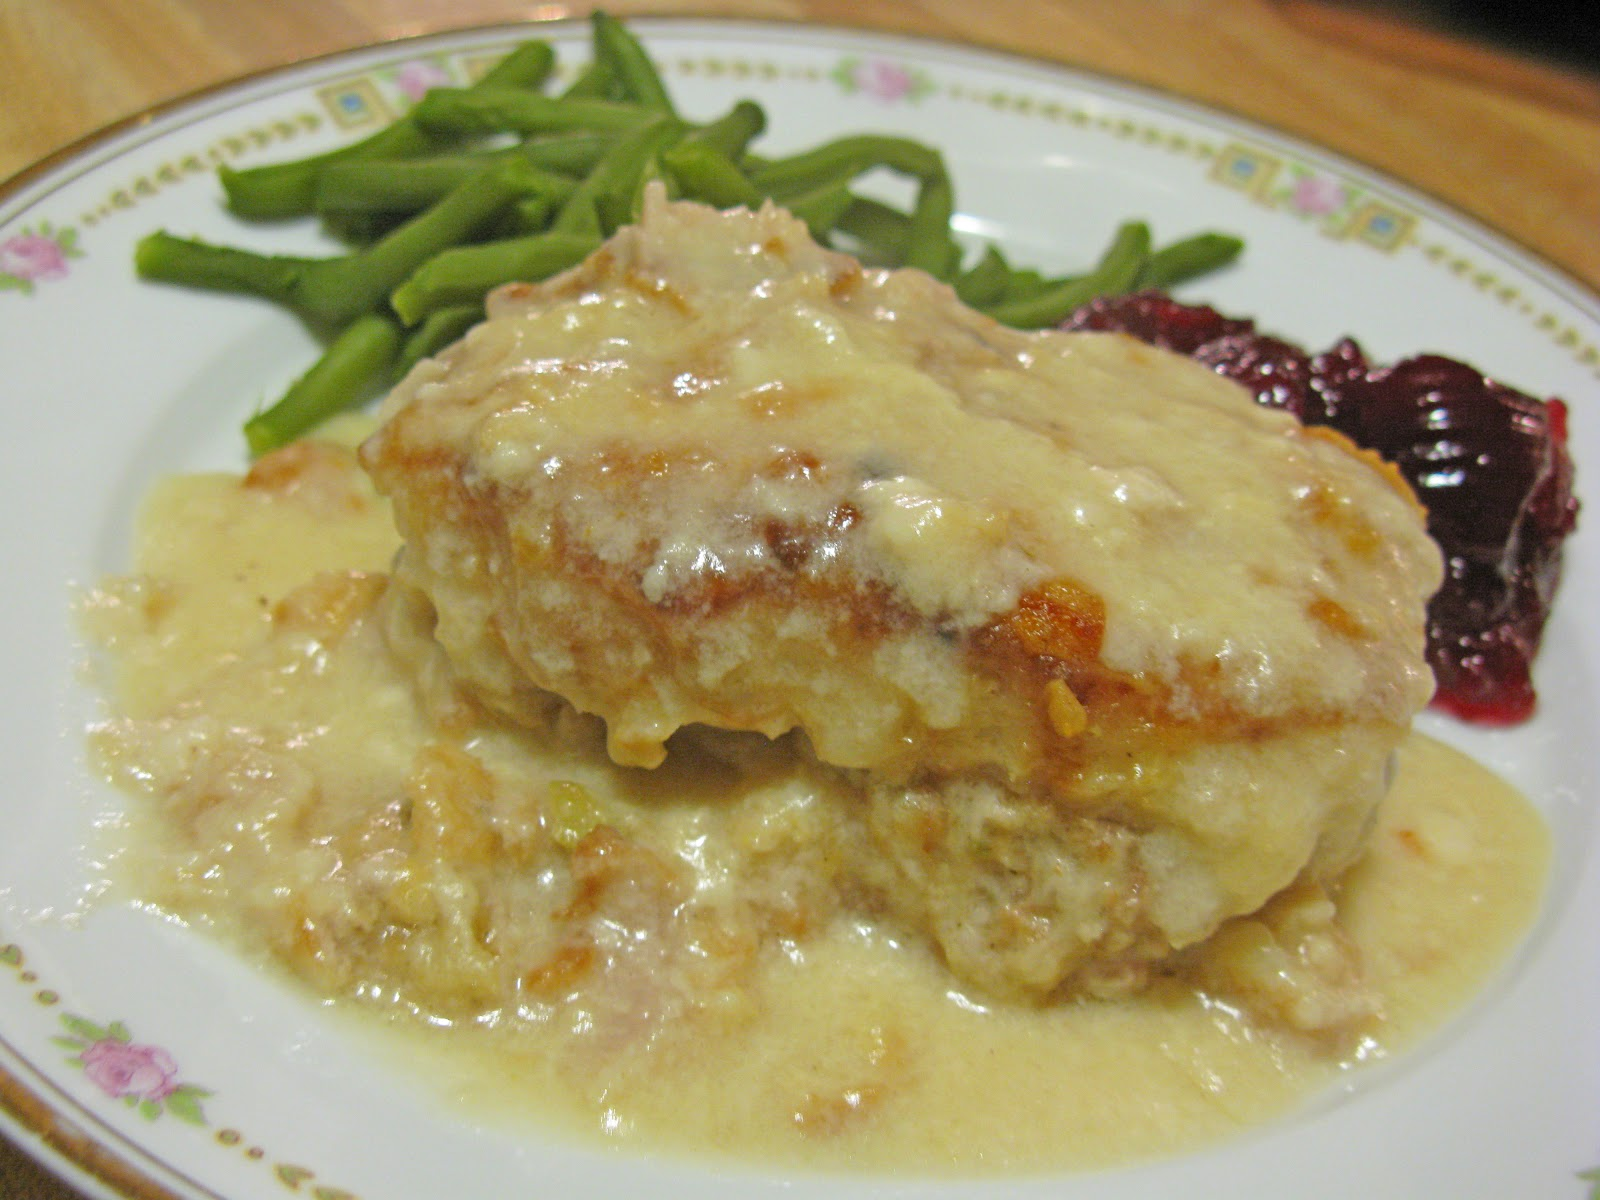 Food for A Hungry Soul: Baked Stuffed Pork Chops and Gravy